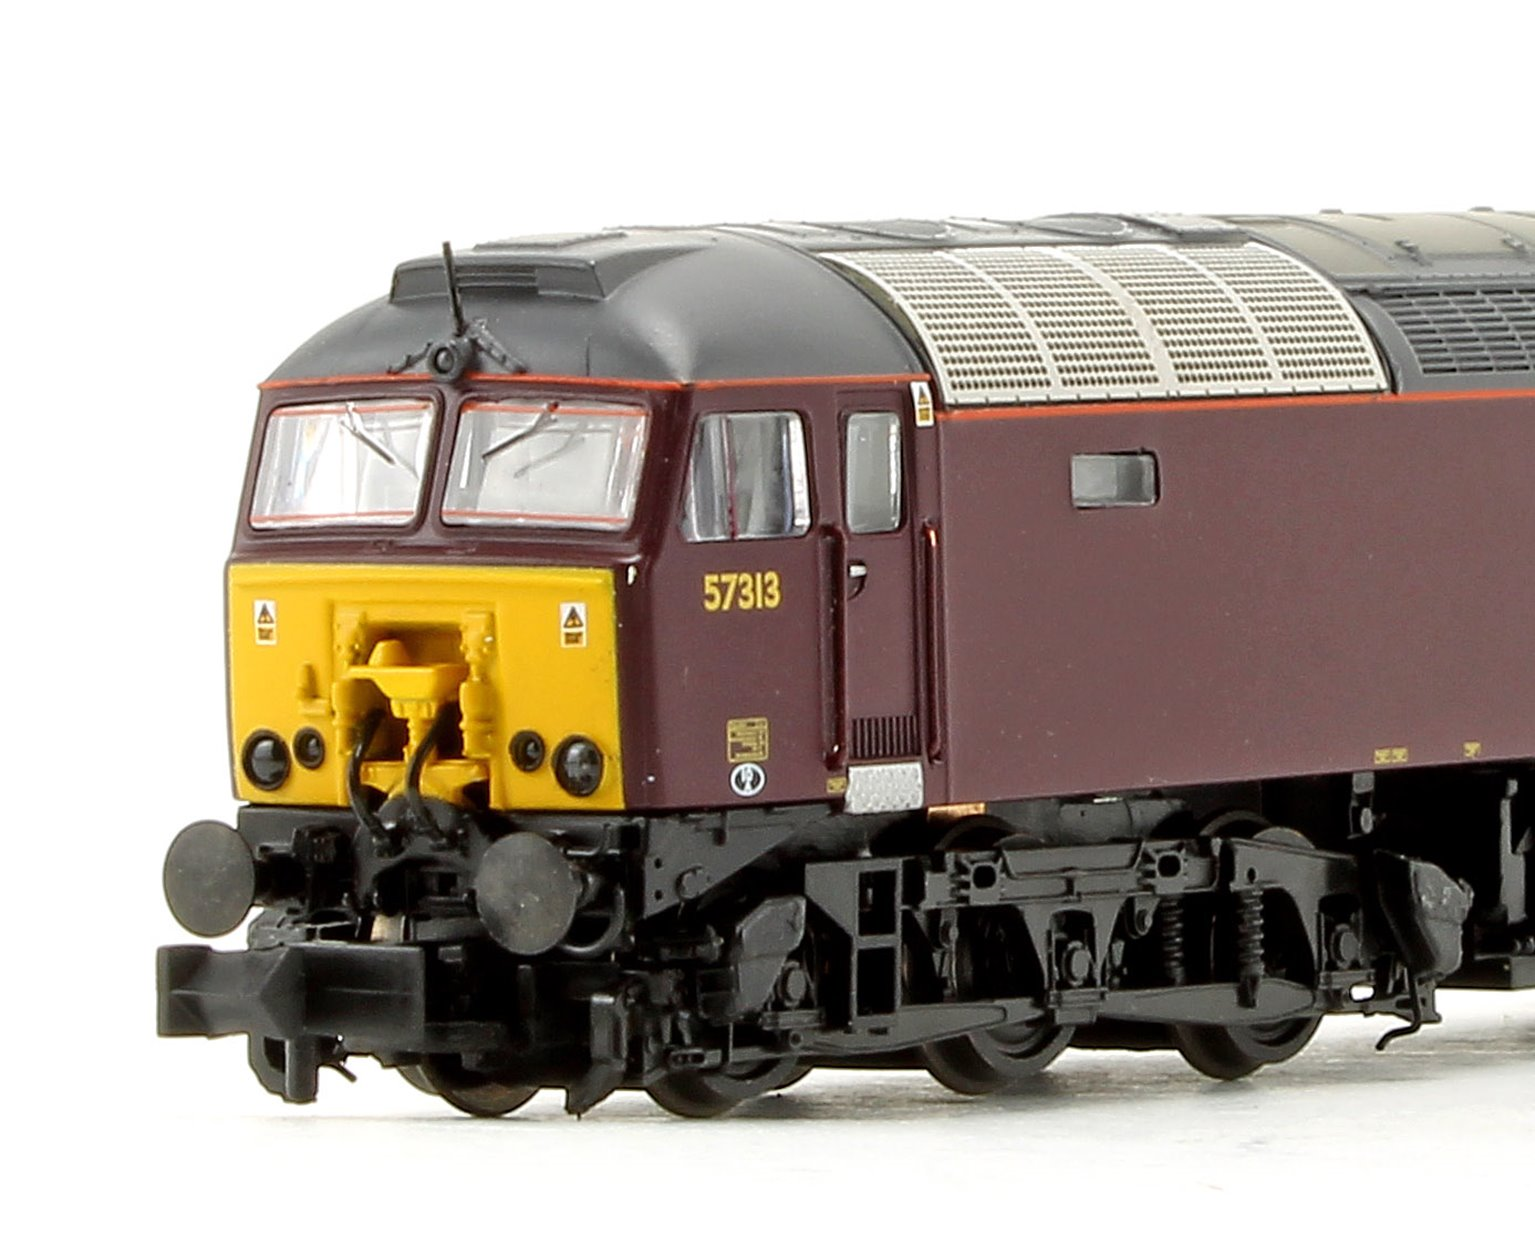 Class 57/3 57313 West Coast Railways Locomotive